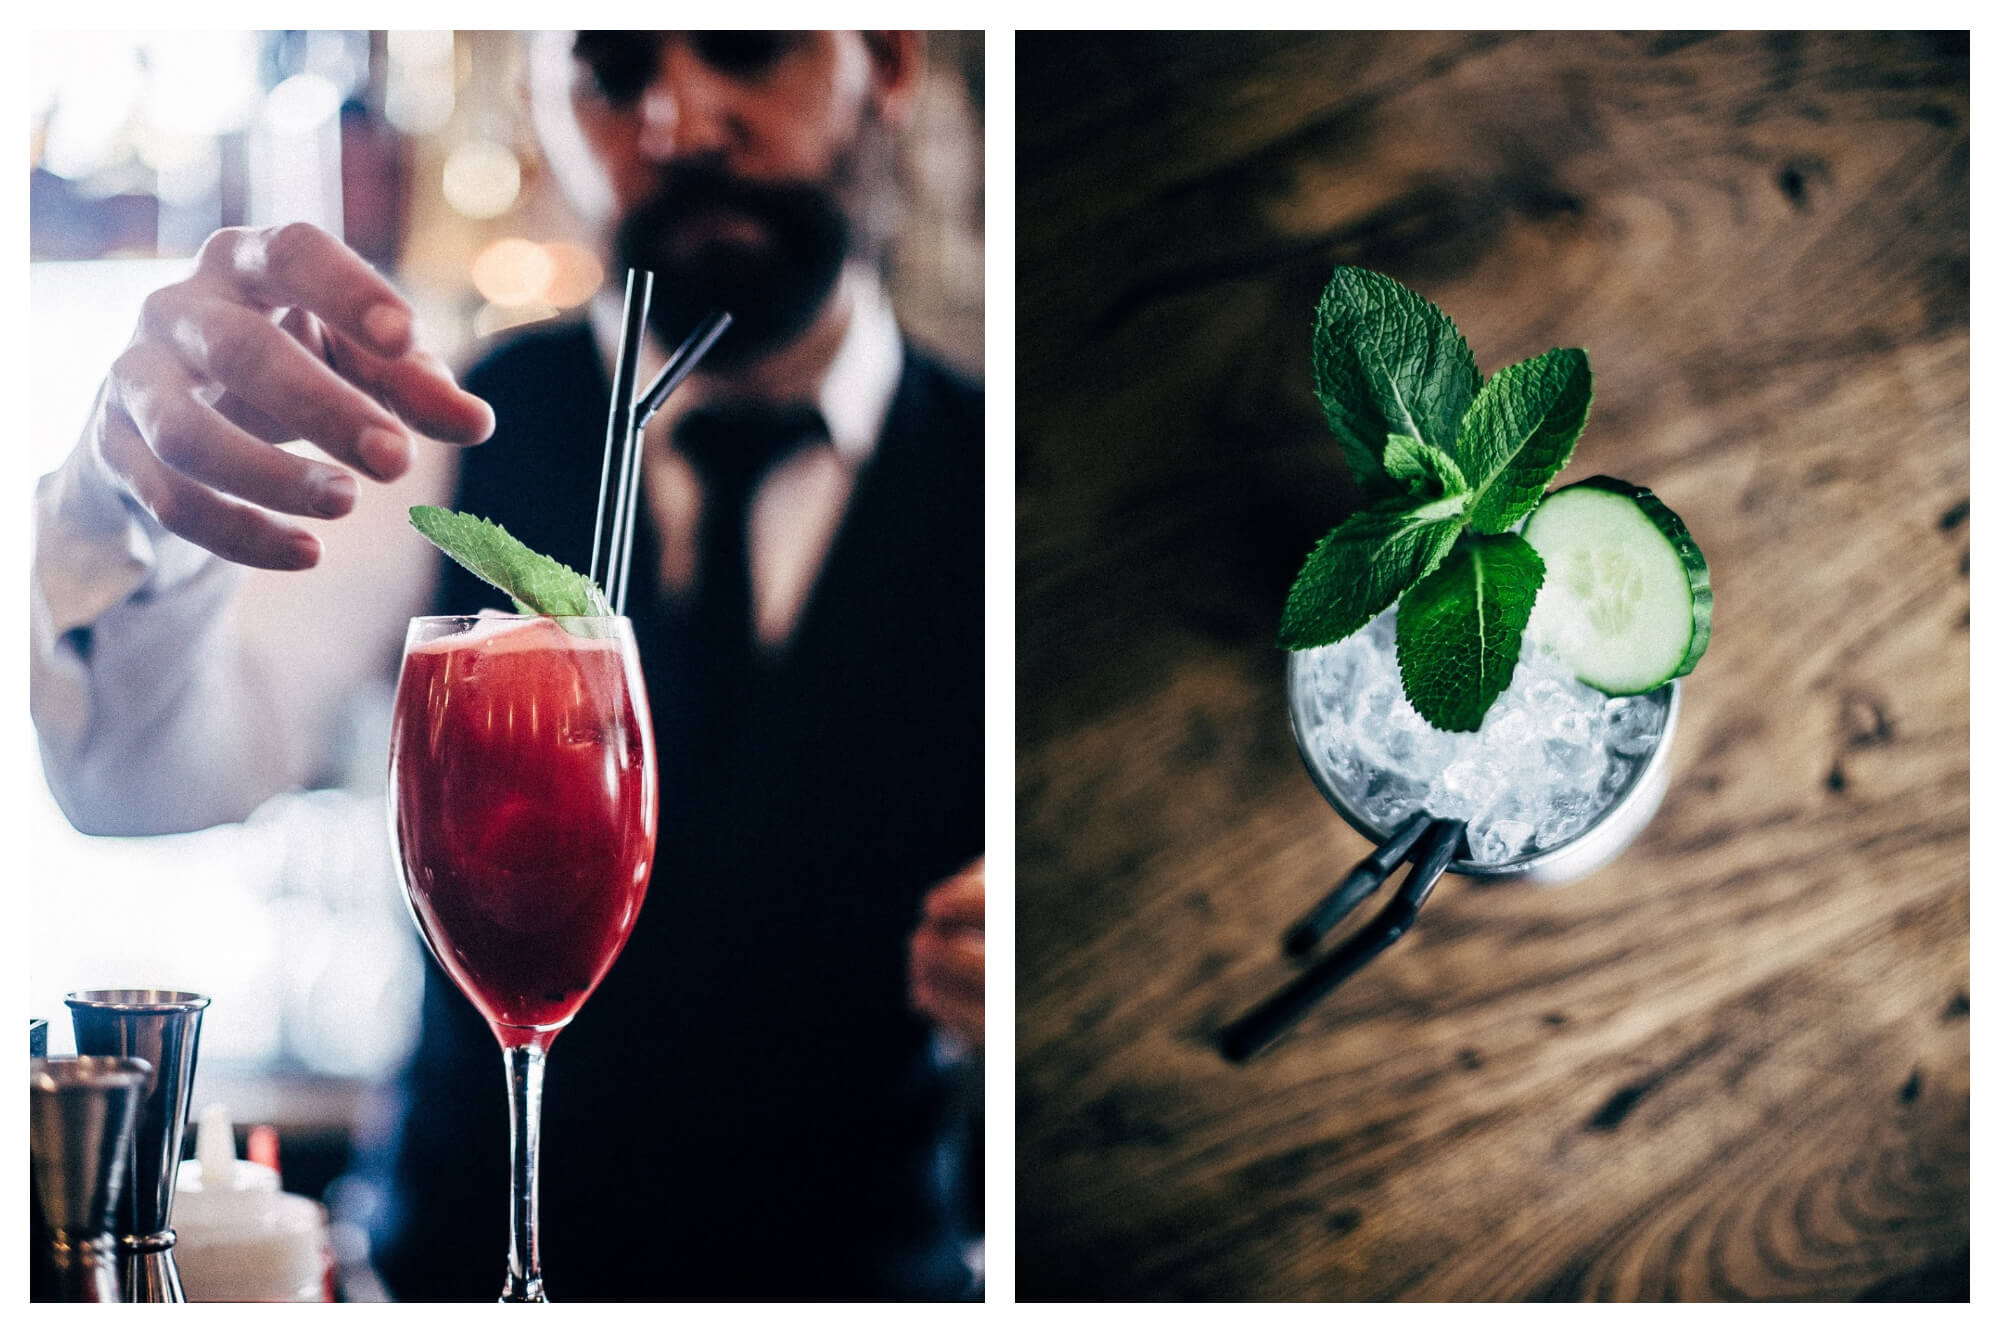 Left: A man preparing a red cocktail with a mint herb leaf, a straw, and a stirrer. Right: View of a cocktail with mint leaves and a cucumber on a table from above.